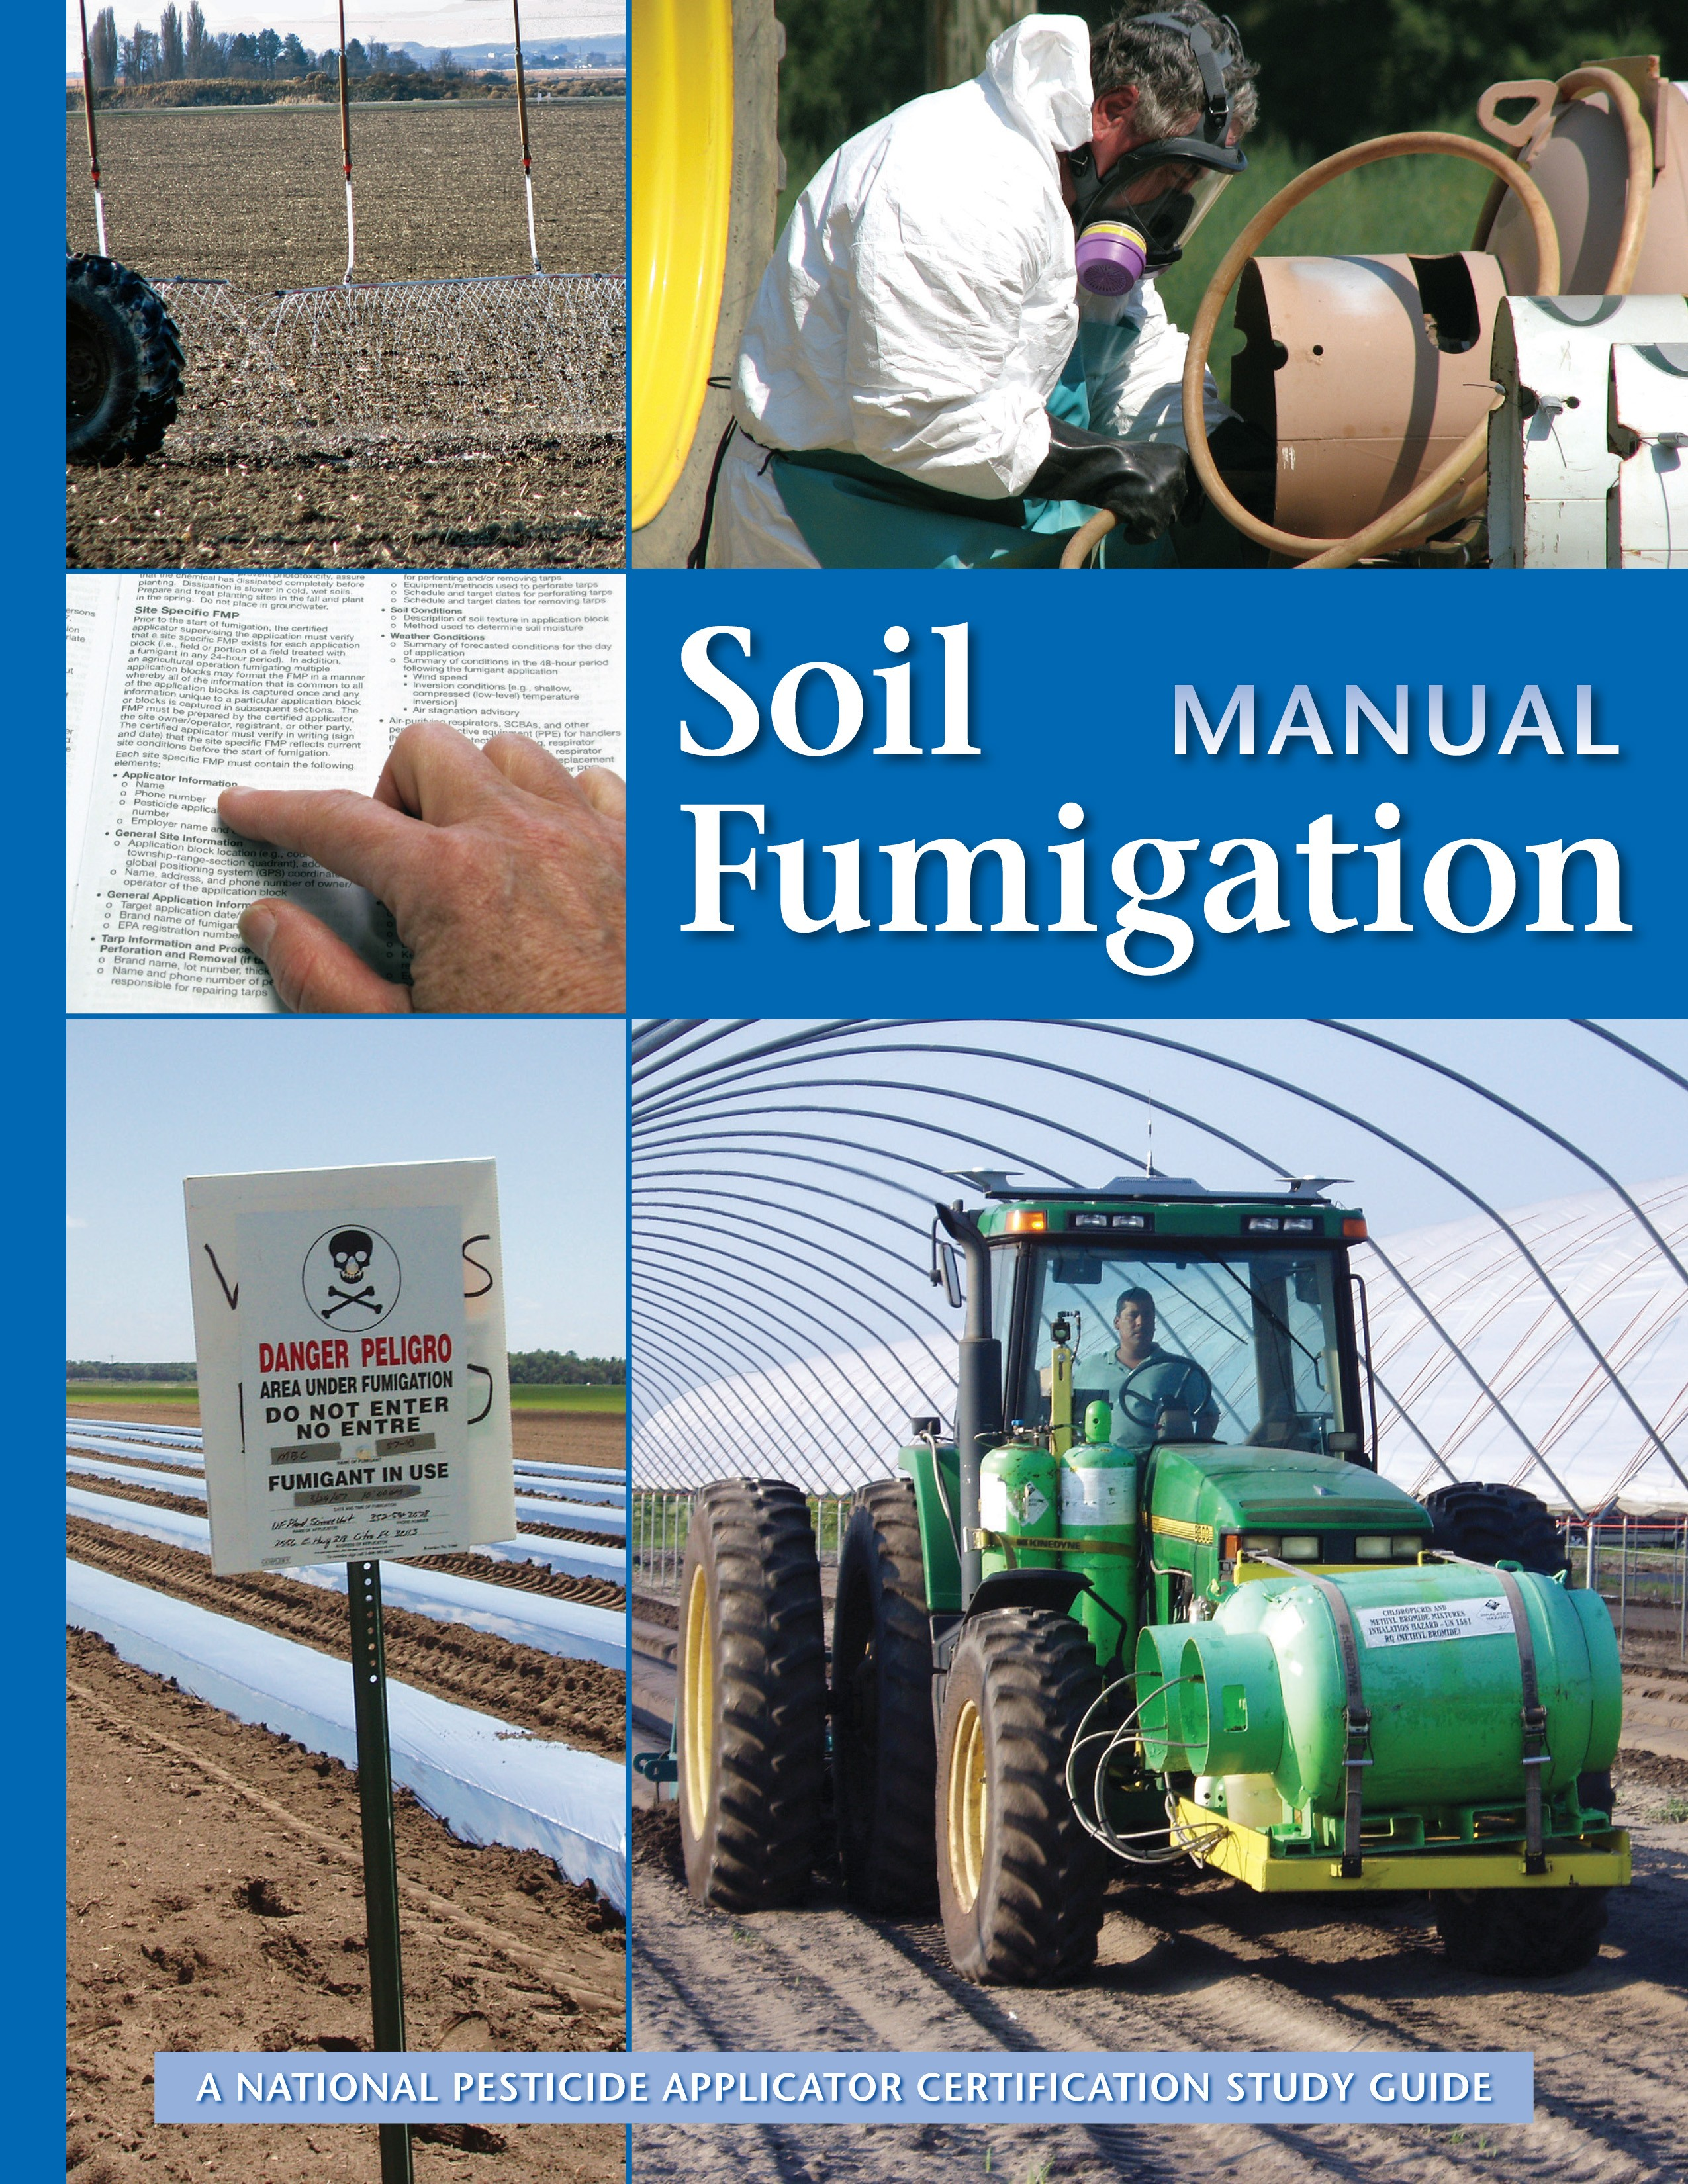 Soil Fumigation (01A) Manual